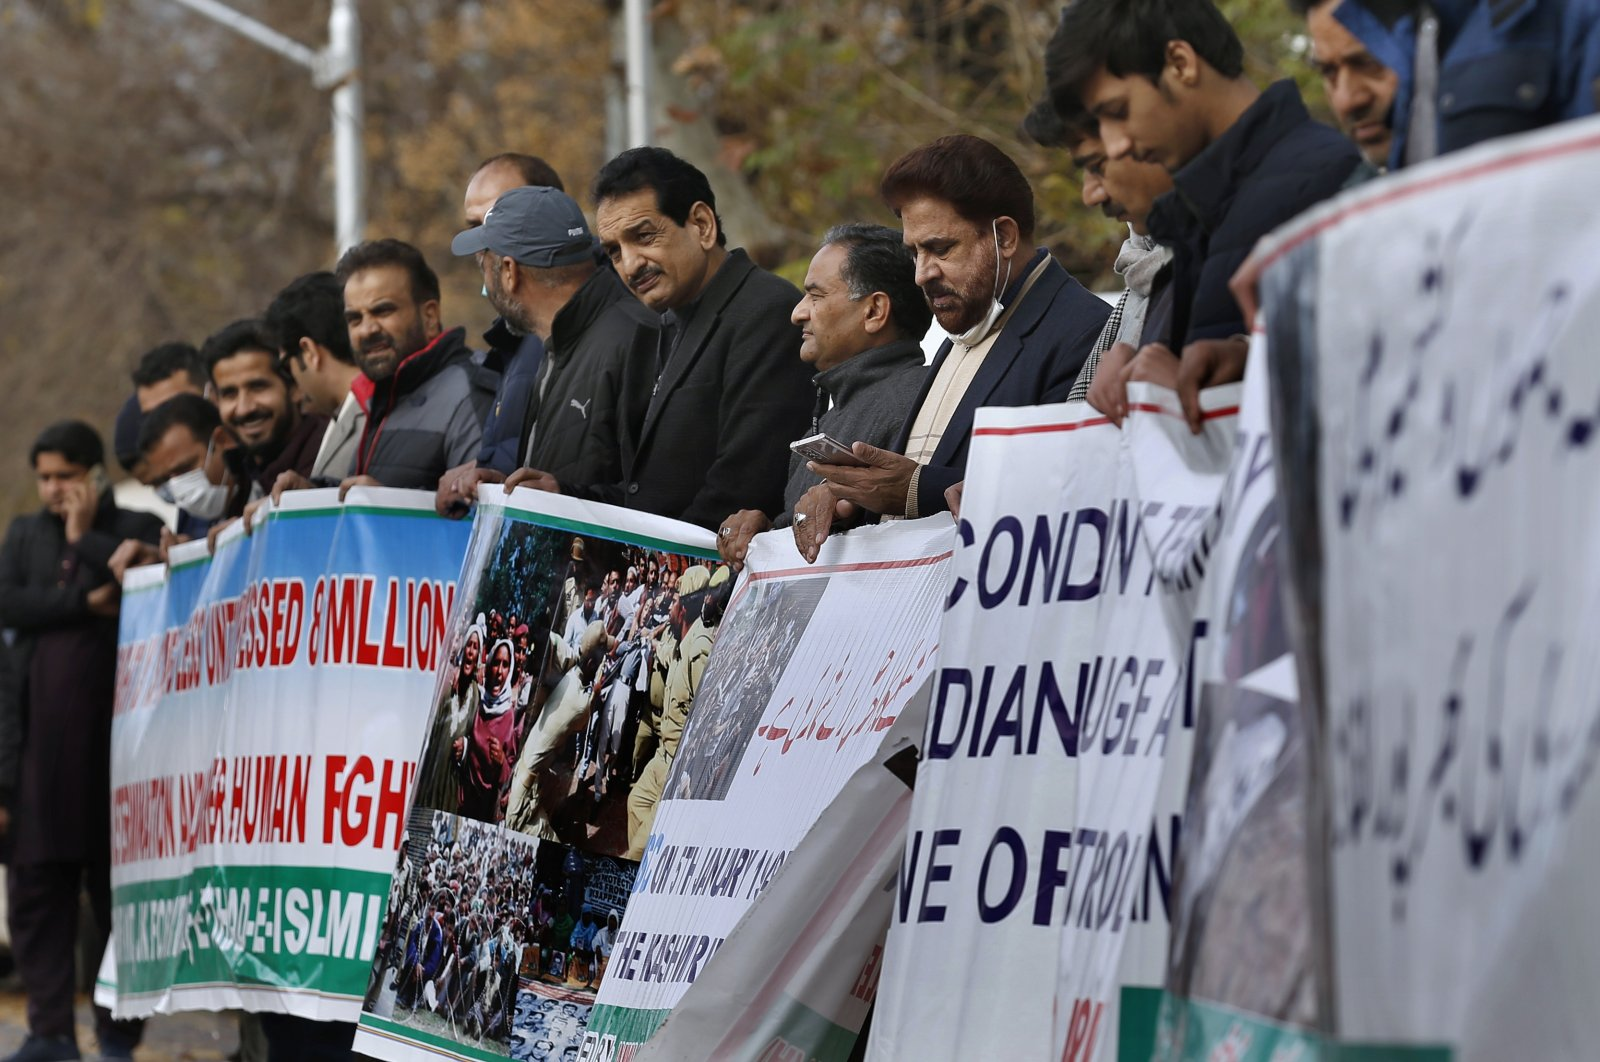 Supporters of the civil society group Jammu Kashmir Forum take part in a demonstration to mark the Right to Self-Determination Day, in Islamabad, Pakistan, Jan. 5, 2020. (AP Photo)